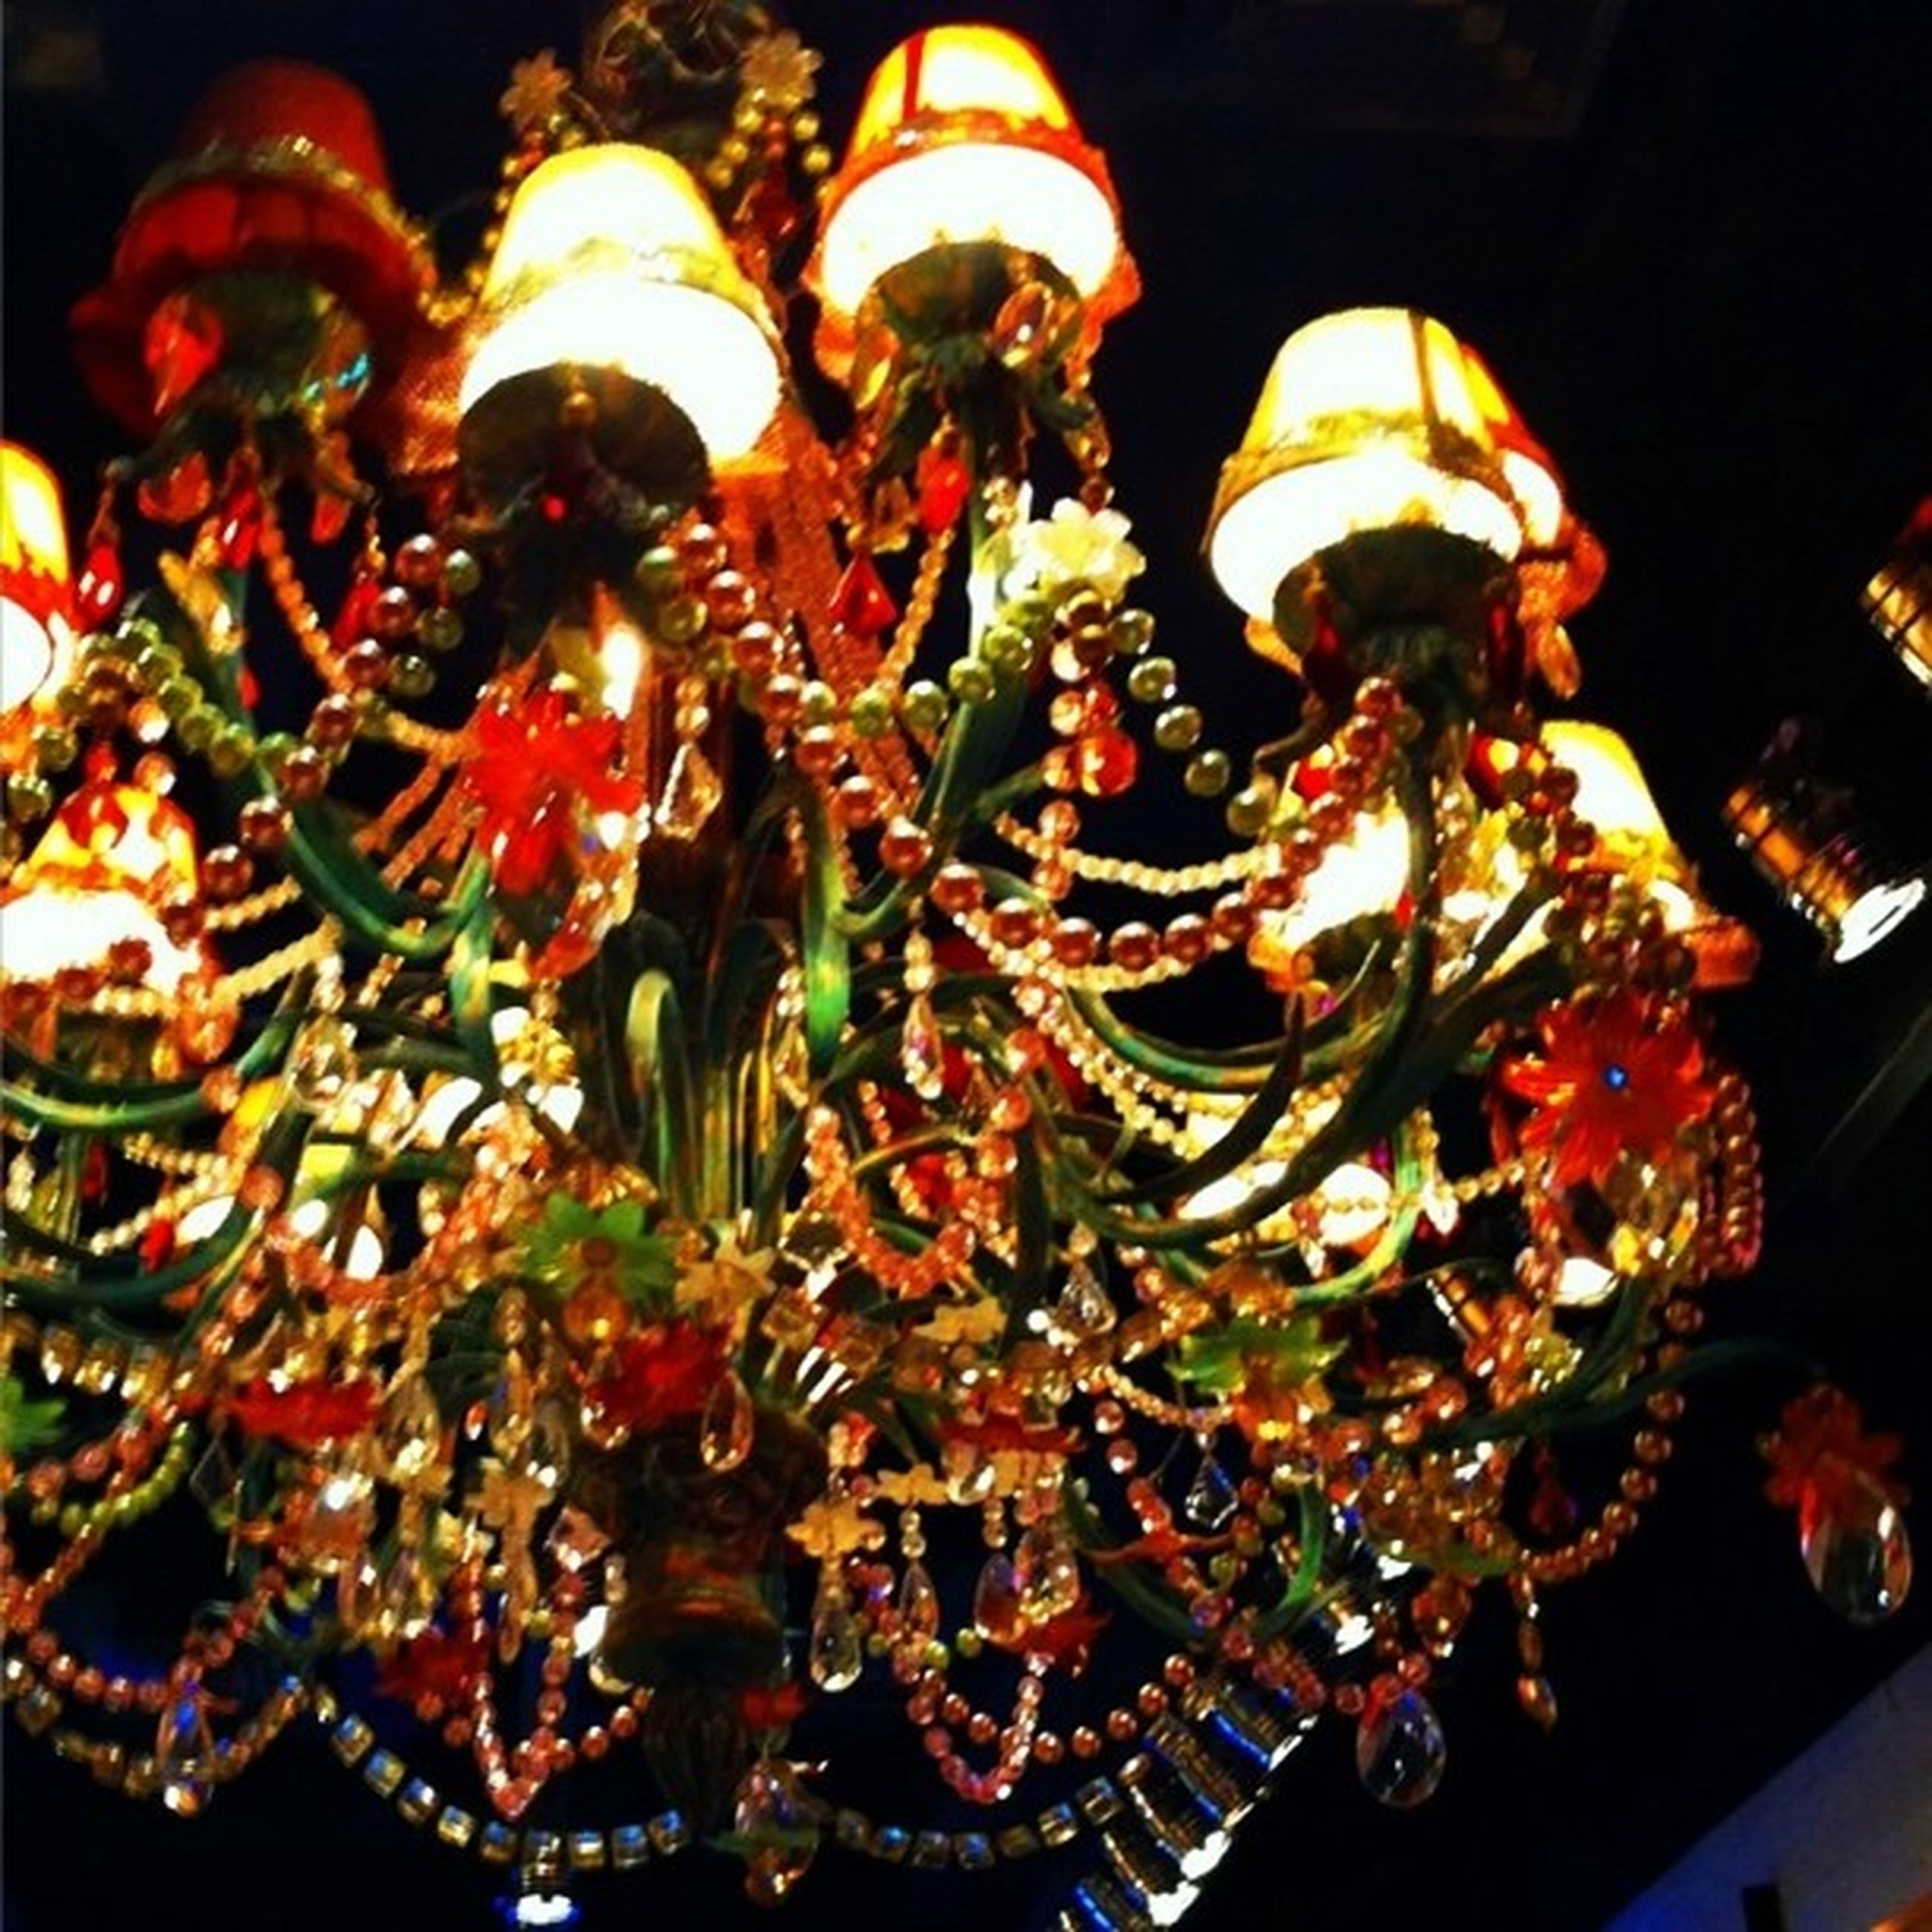 indoors, illuminated, decoration, hanging, celebration, tradition, cultures, christmas, night, christmas decoration, religion, lighting equipment, low angle view, christmas lights, spirituality, decor, red, traditional festival, place of worship